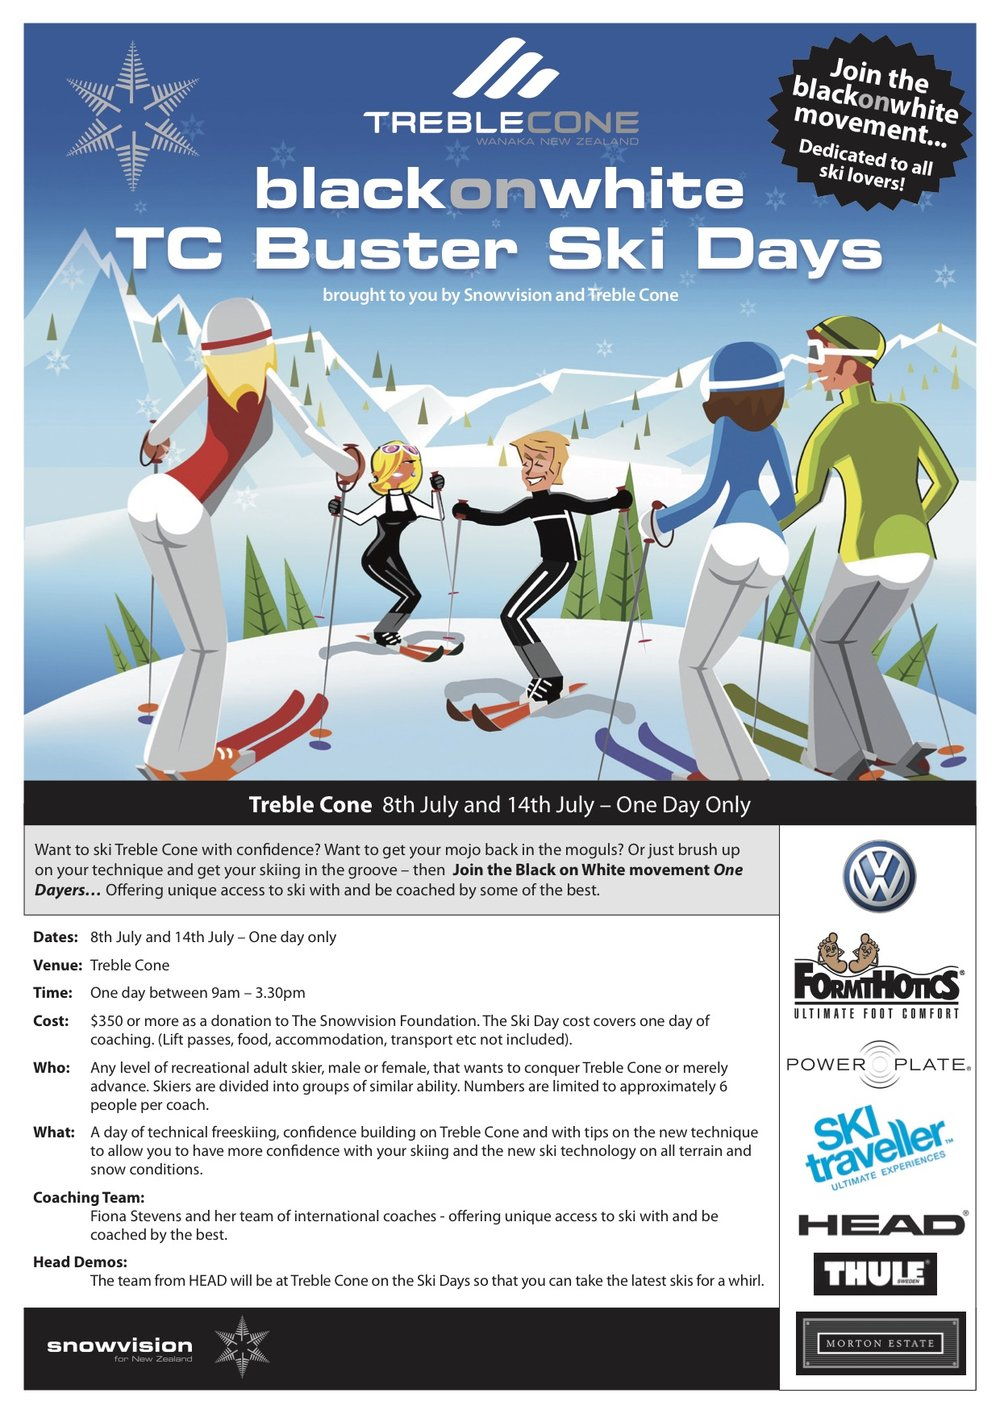 Invitation to Treble Cone Buster Ski Day 2009